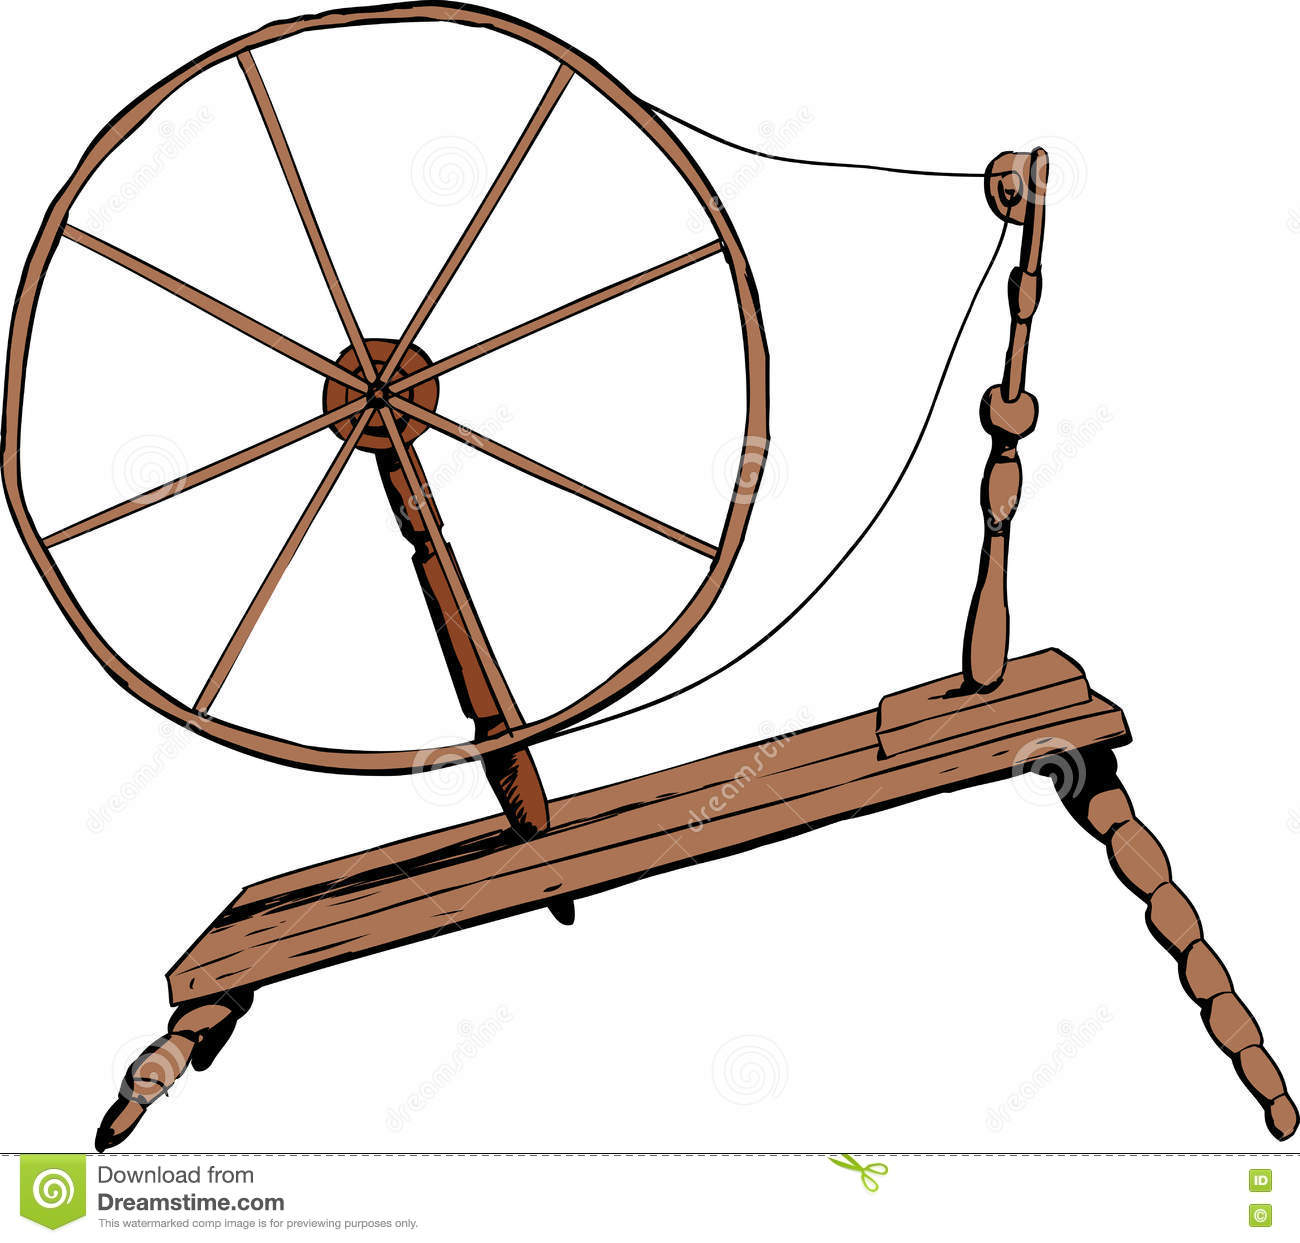 Old Spinning Wheel Stock Illustrations 114 Old Spinning Wheel Stock Illustrations Vectors Clipart Dreamstime